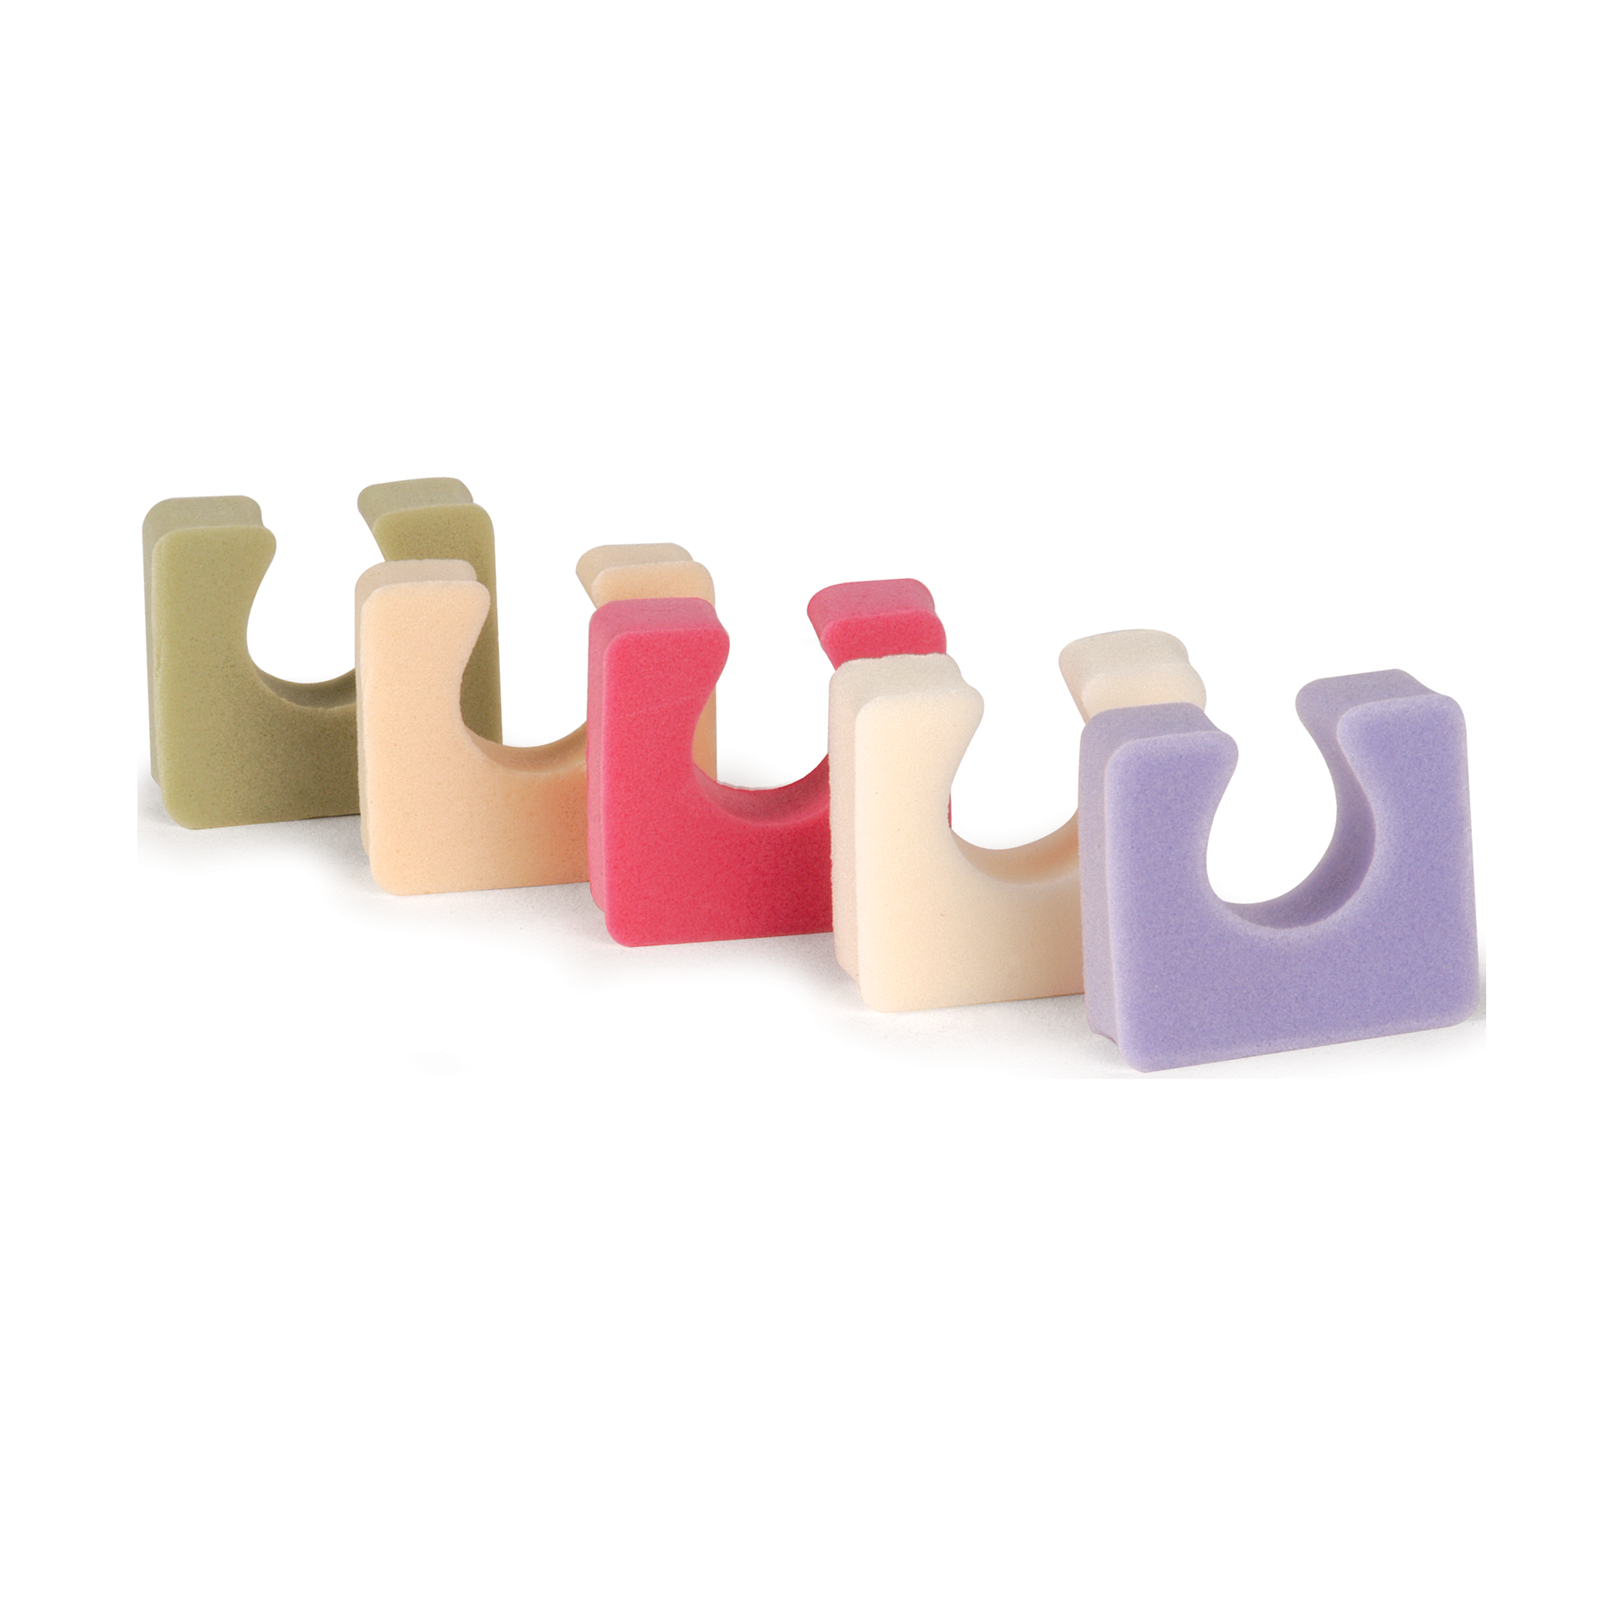 StarPro Toezees Toe Separators - Assorted Colors